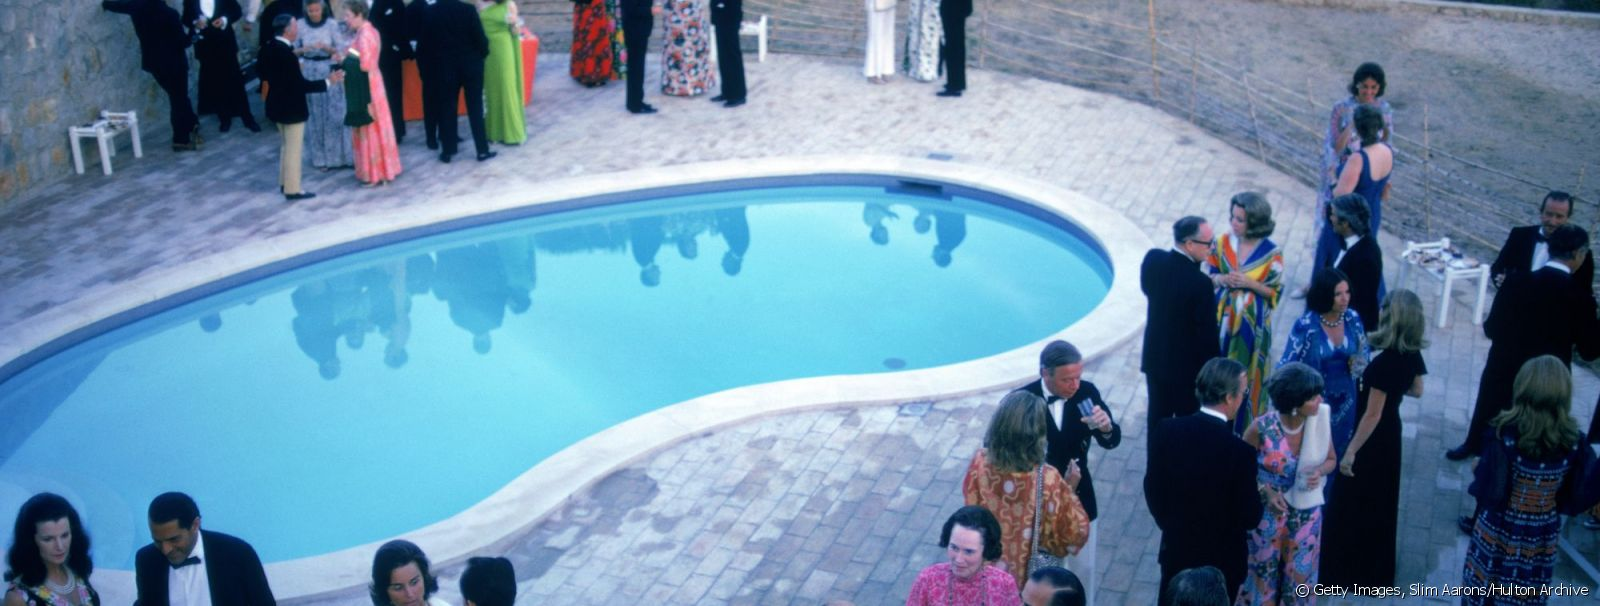 A formal party by a swimming pool in the Algarve, Portugal, June 1973.